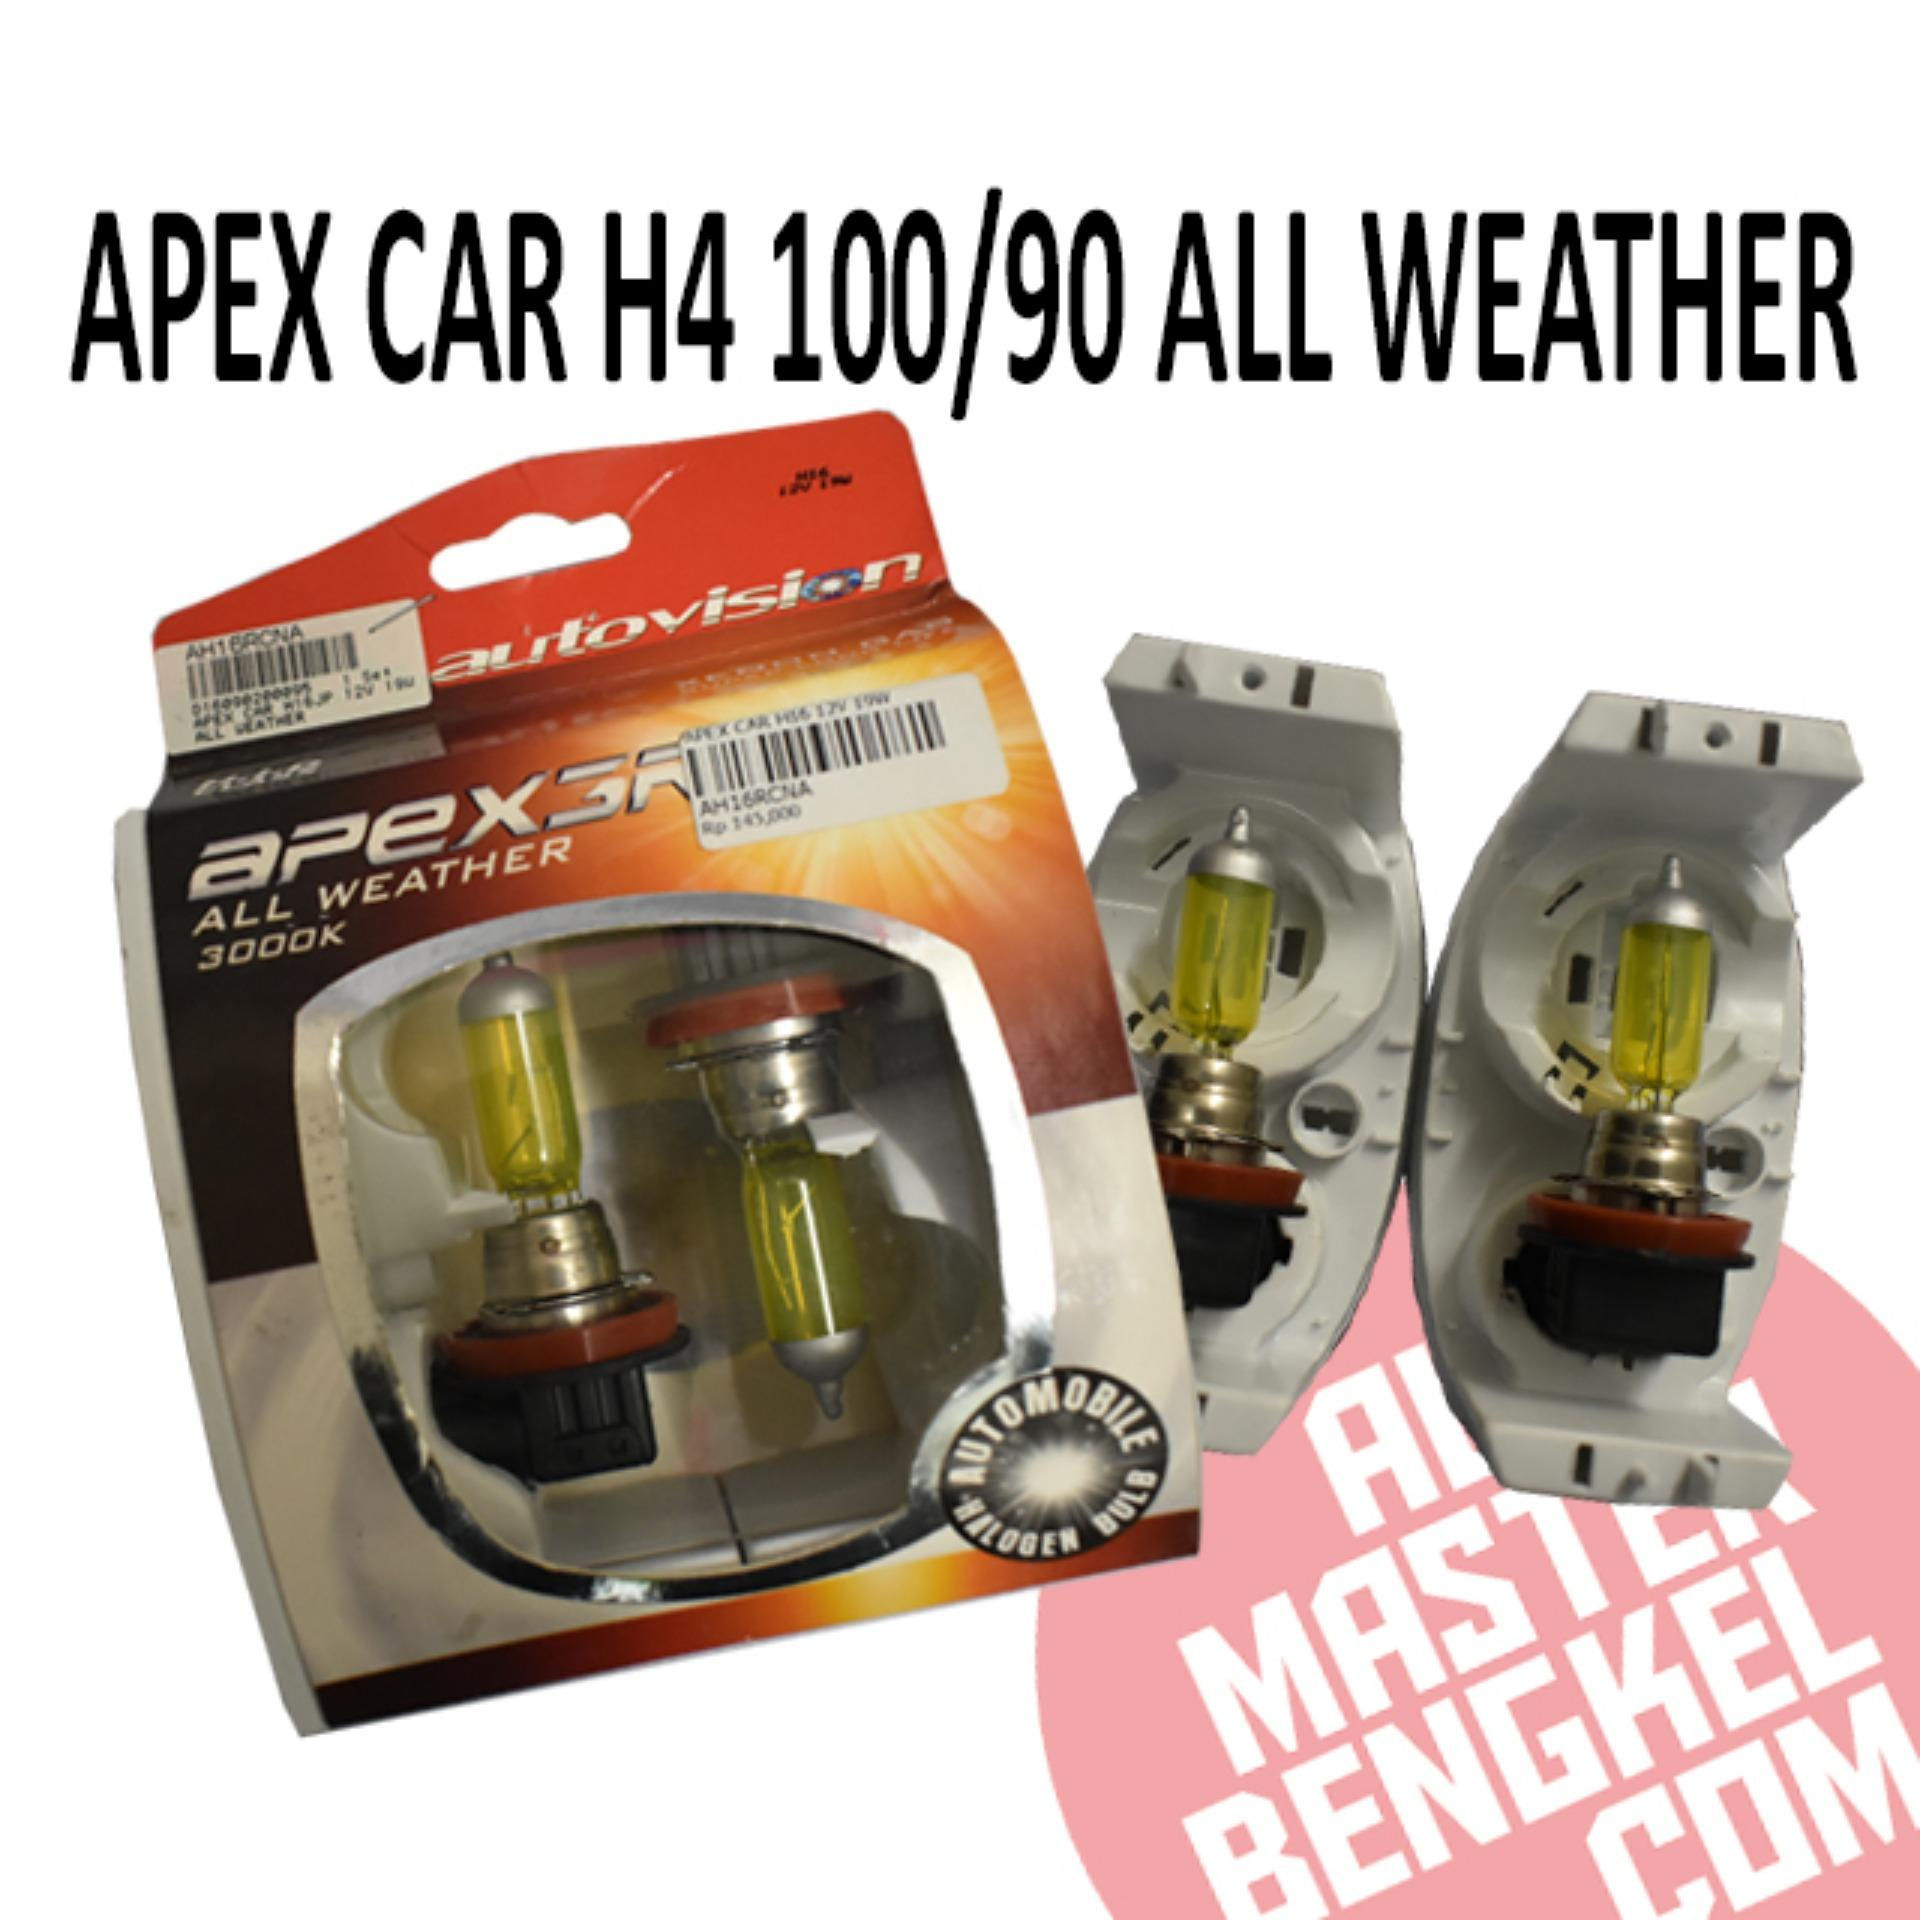 Apex Car H4 100/90 A Weather By Automaster Bengkel